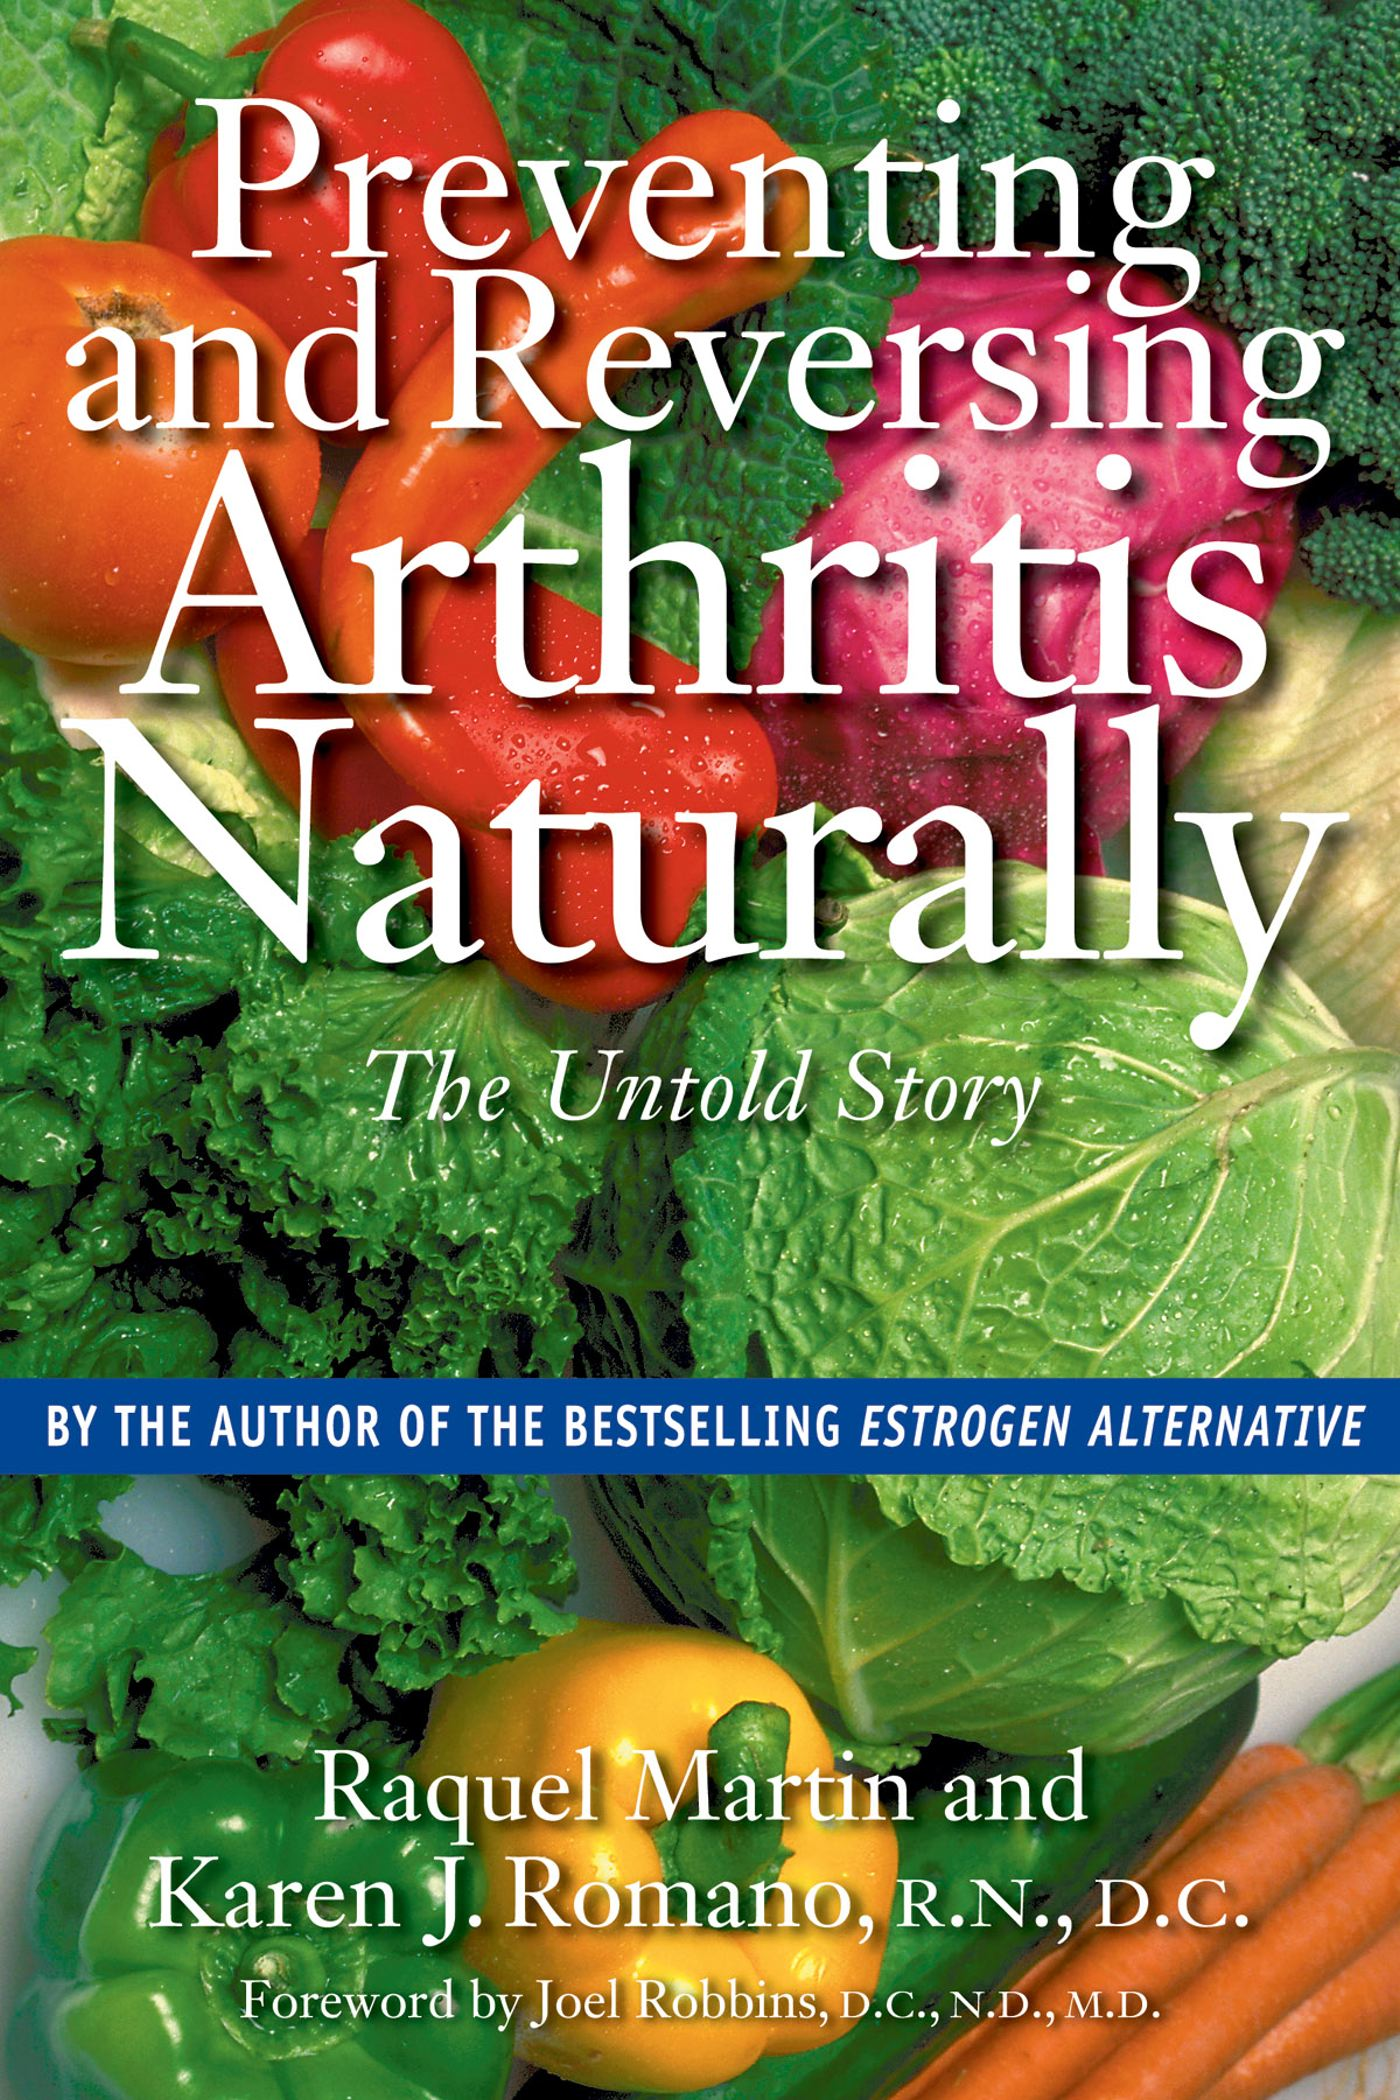 Preventing-and-reversing-arthritis-naturally-9780892818914_hr